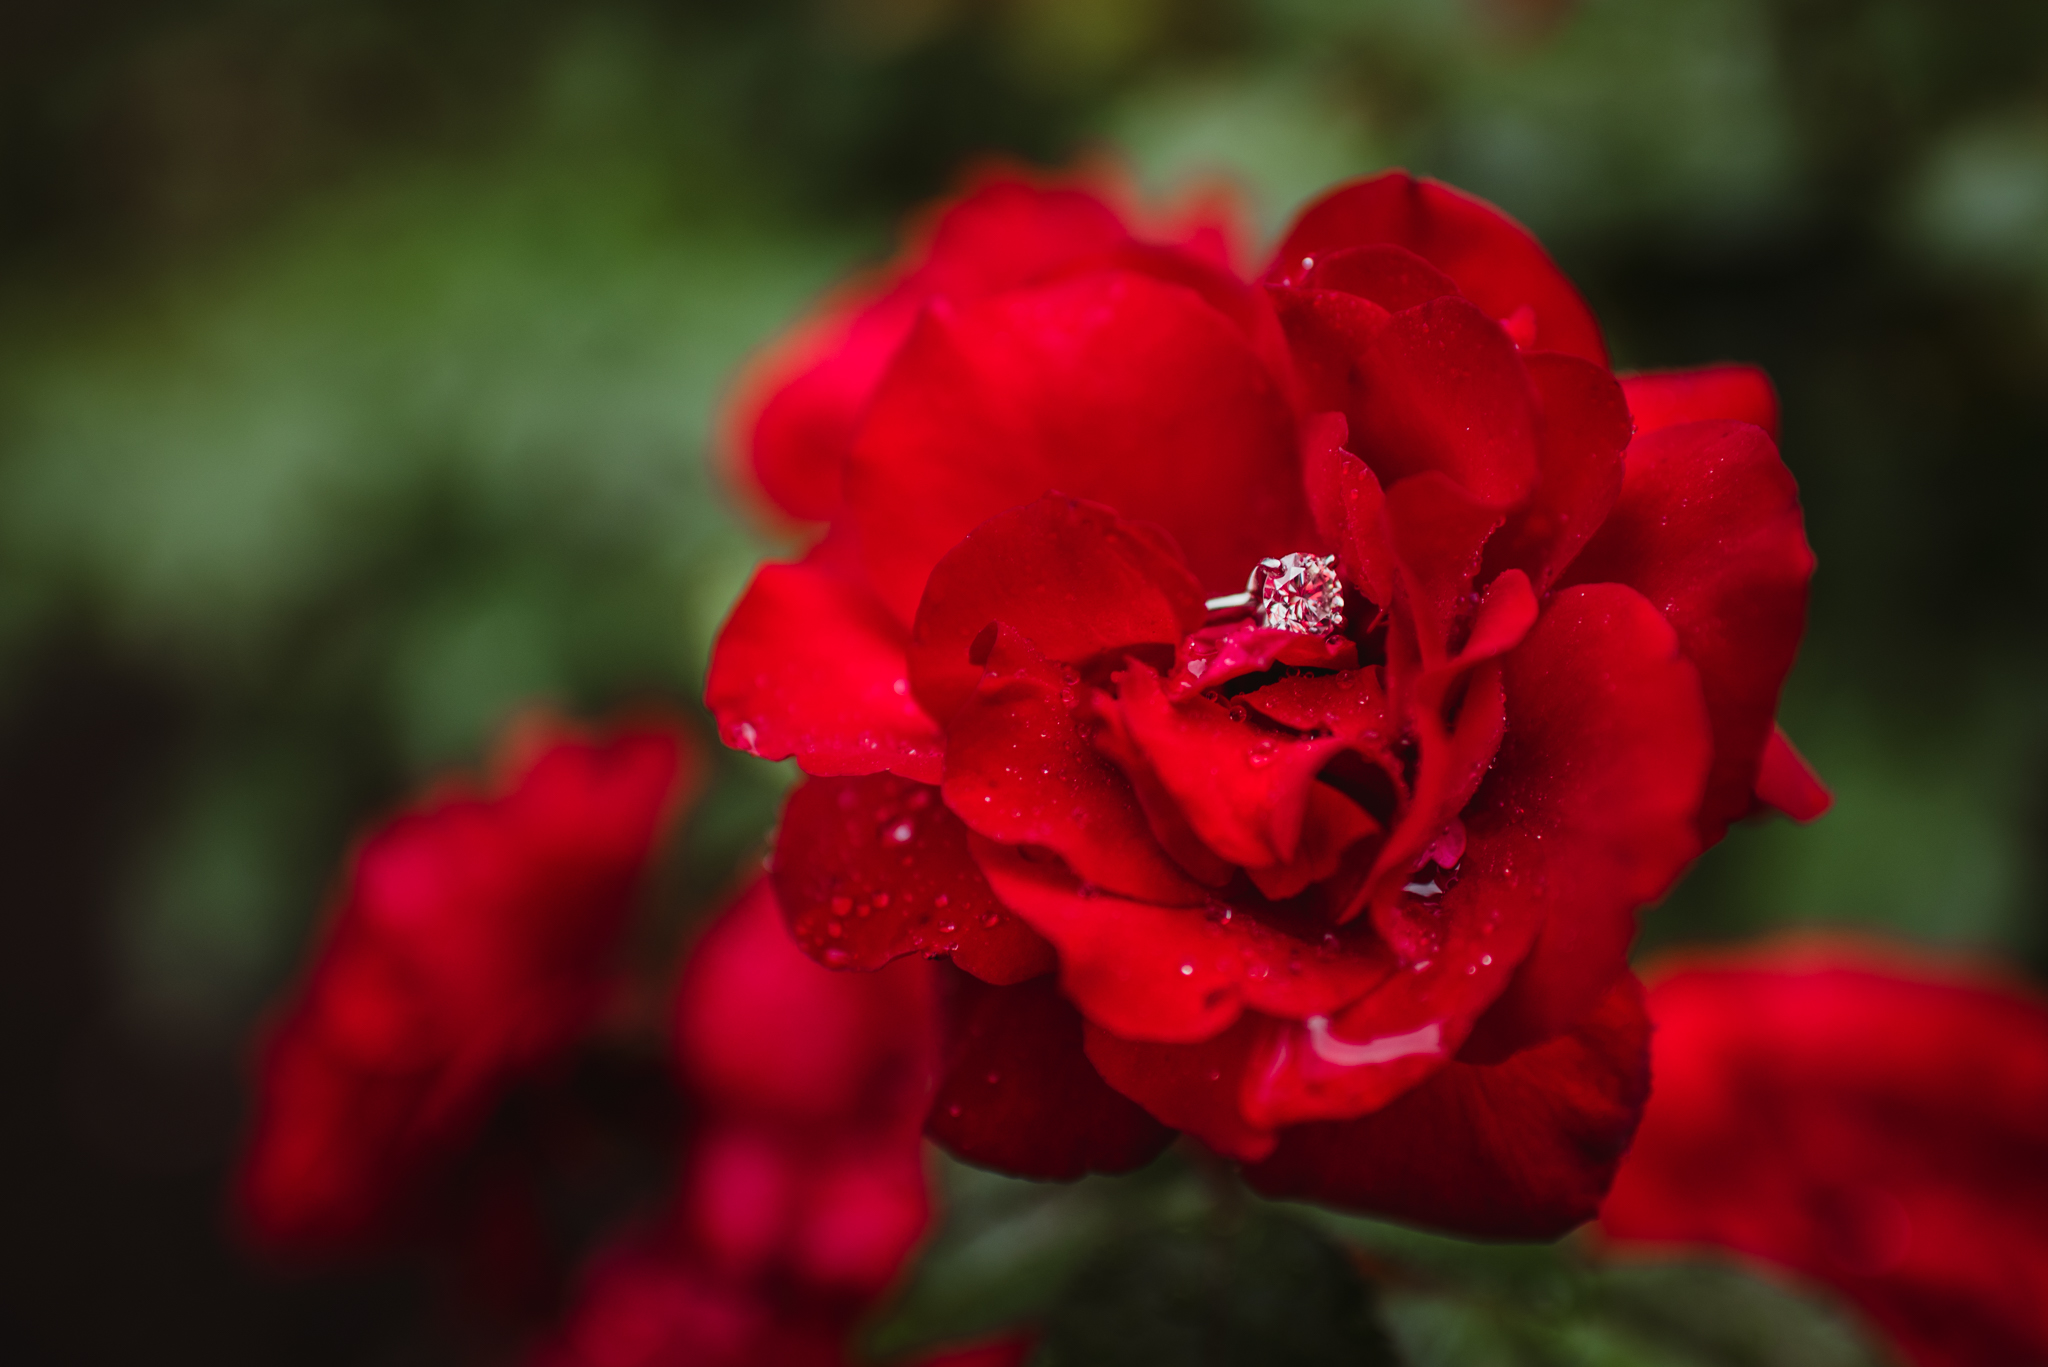 A shot of the engagement ring in the red roses during the rainstorm in Raleigh, during an engagement session with Rose Trail Images.